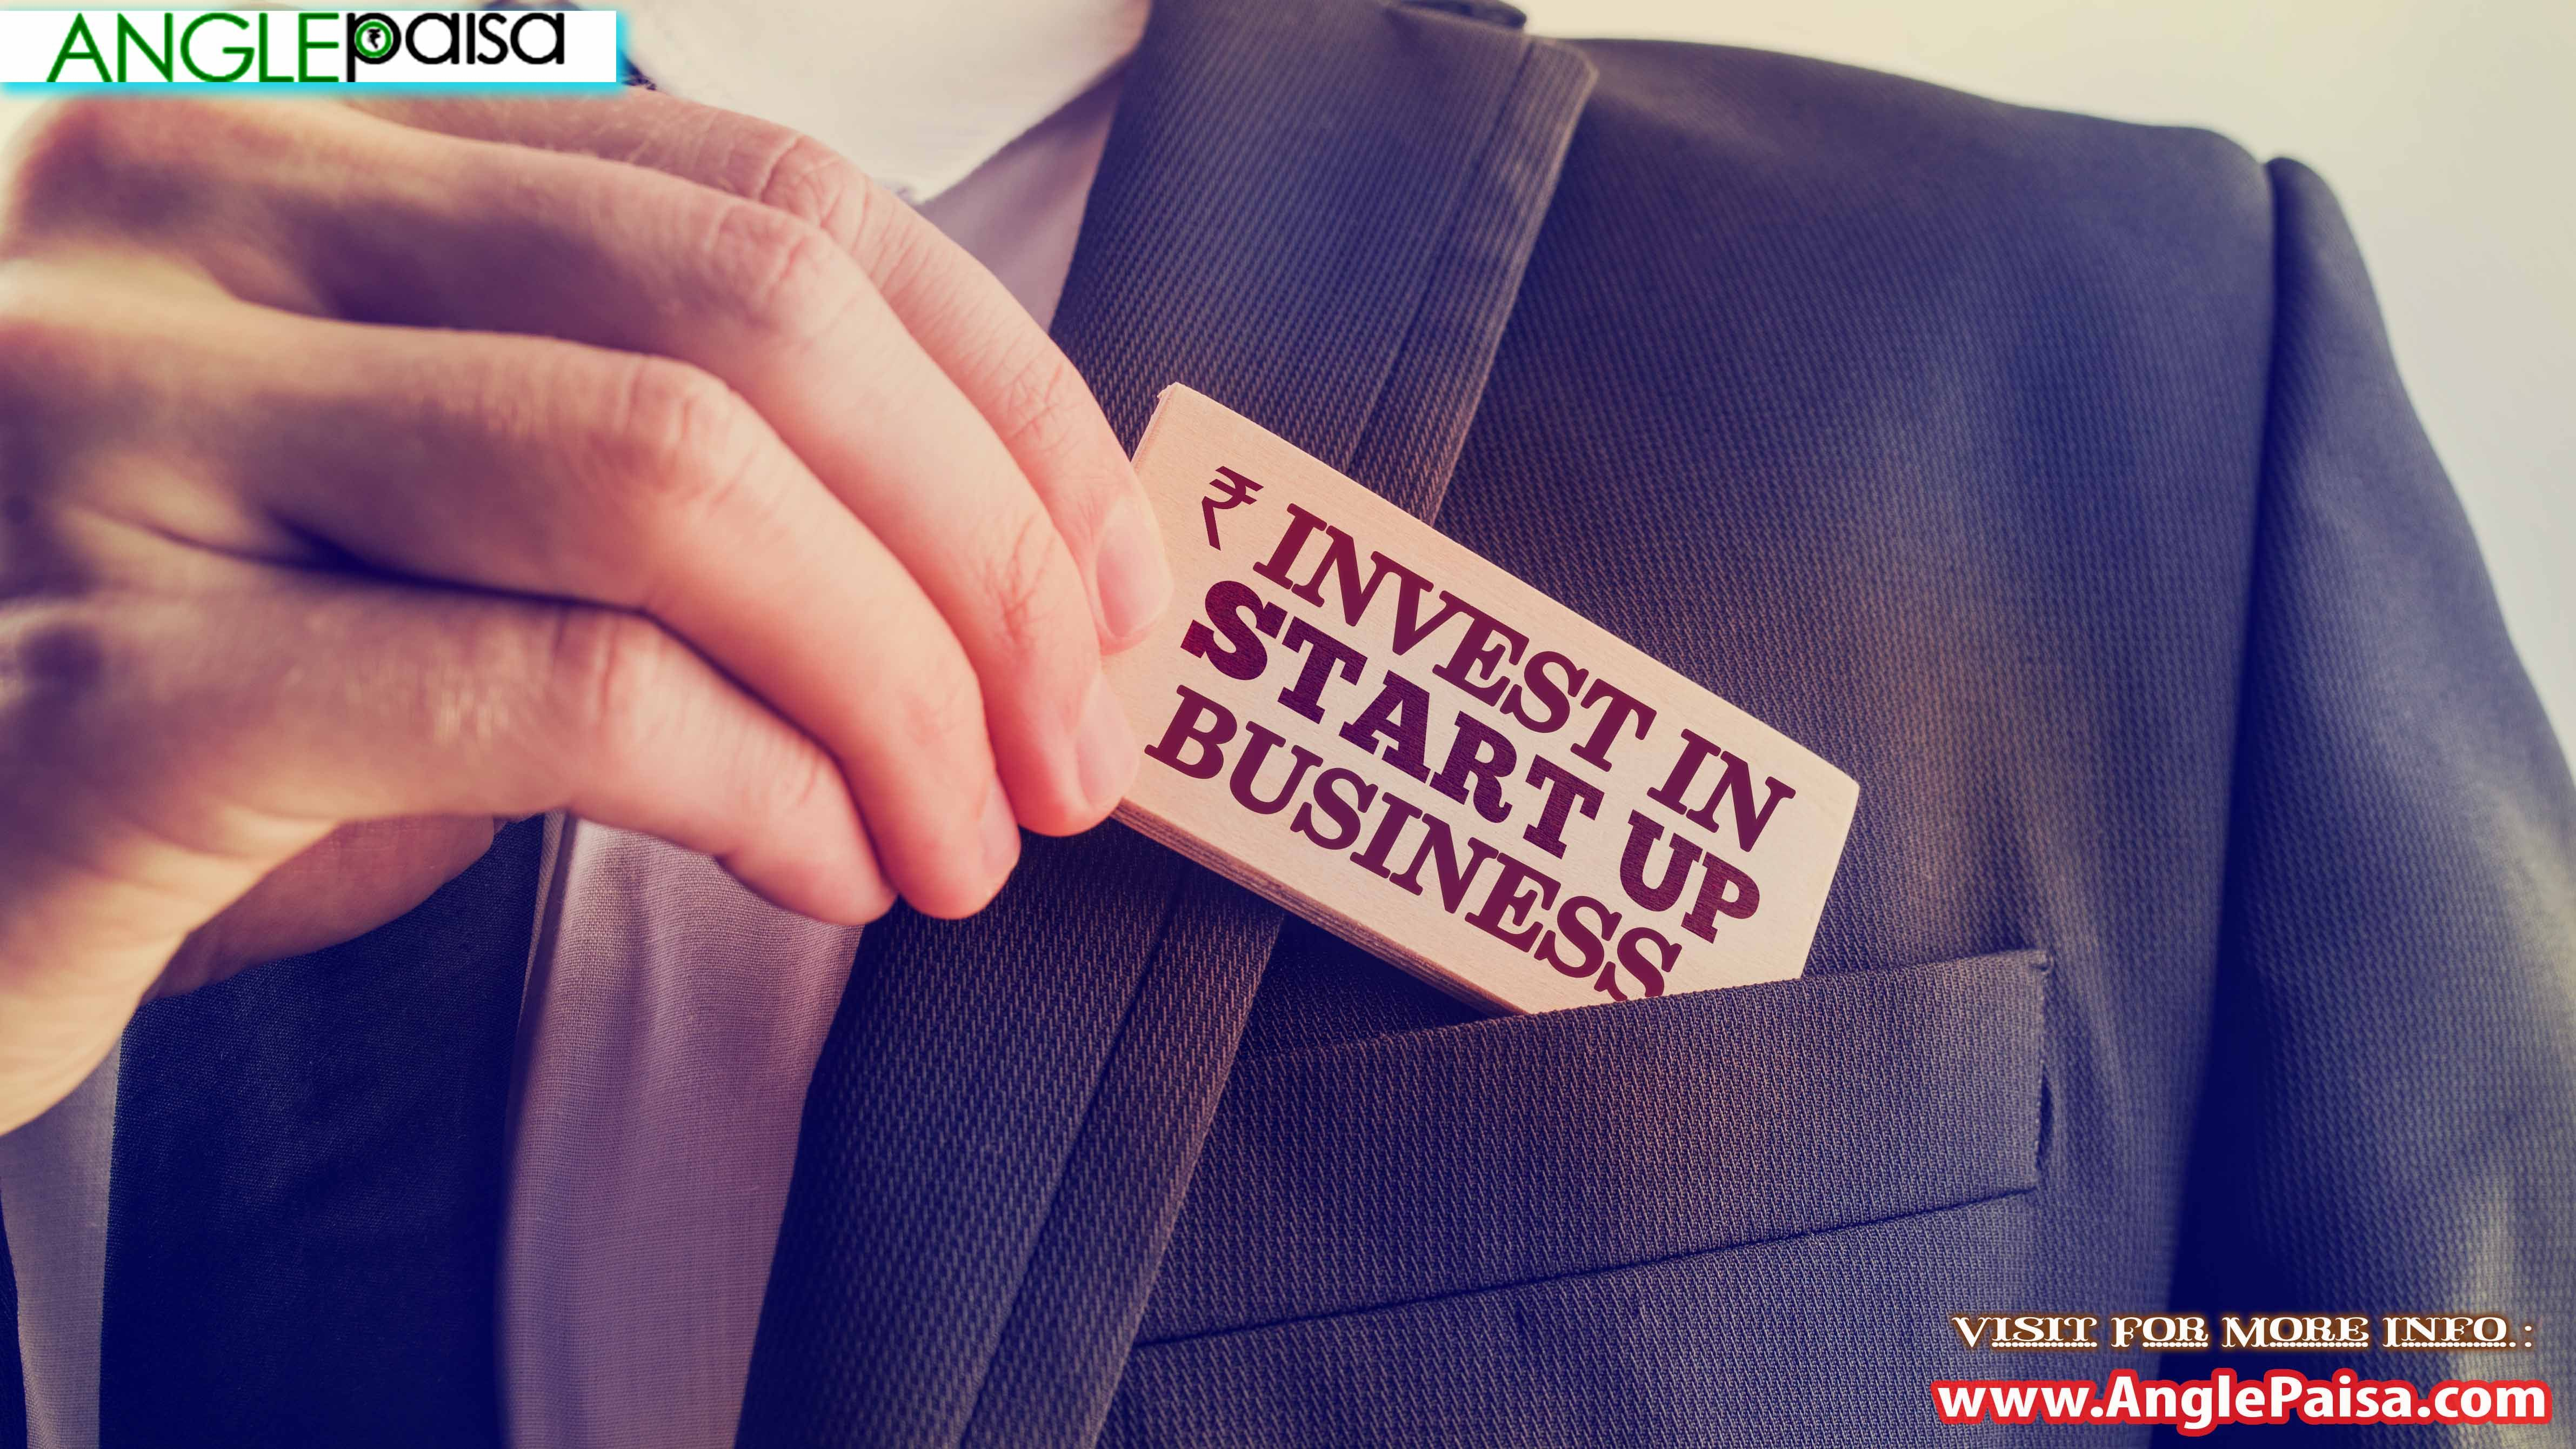 When you are looking for a business, you would want to